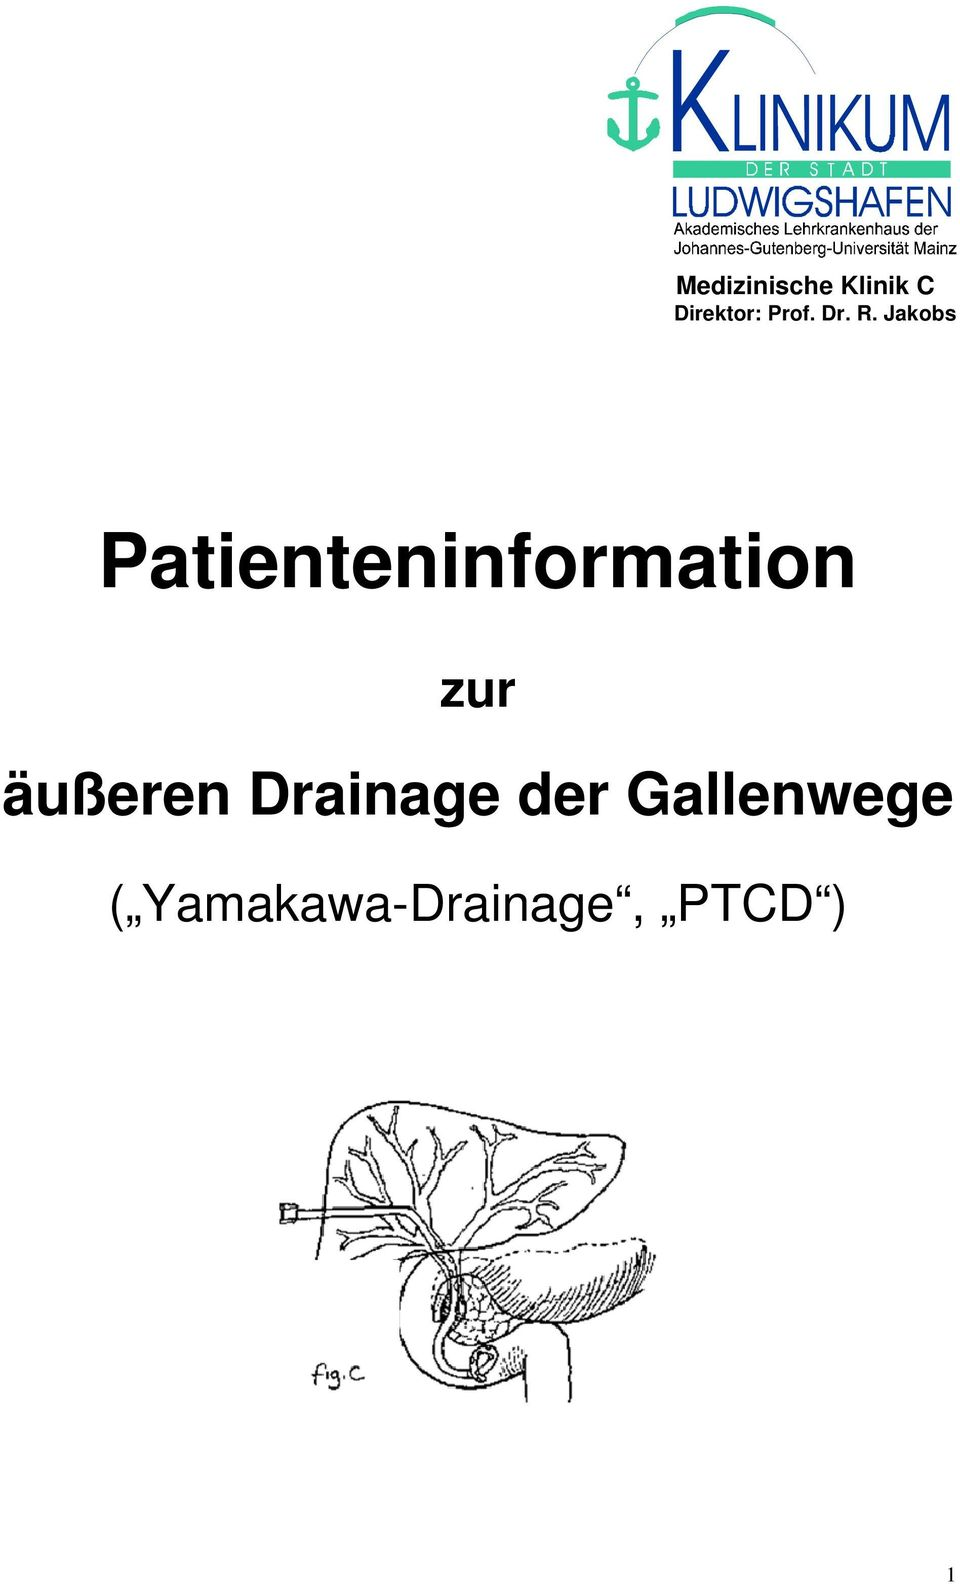 Jakobs Patienteninformation zur